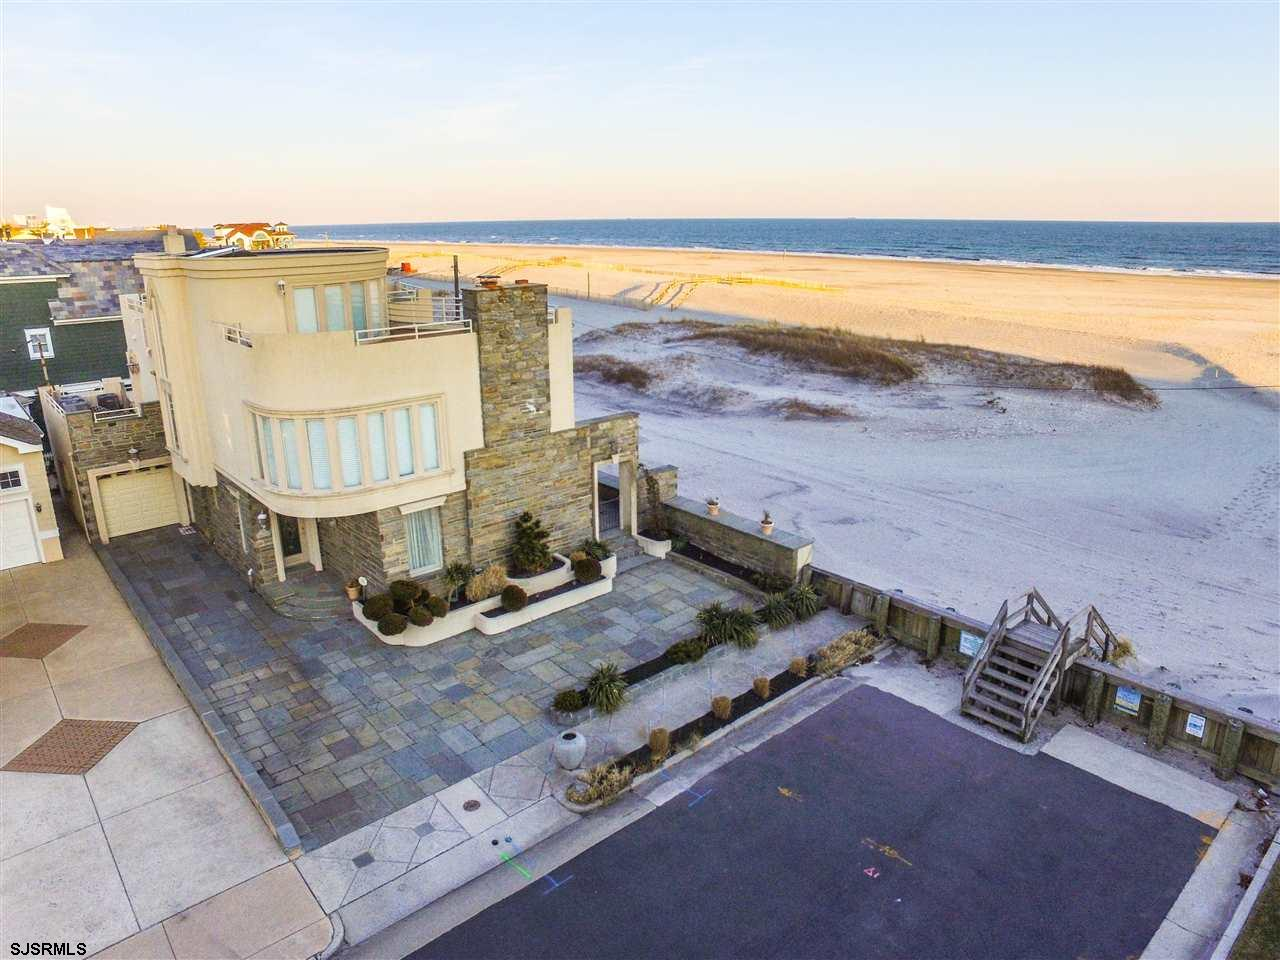 Direct Oceanfront Parkway location! This home has many options for luxury living and your taste or lifestyle! Spectacular one of a kind luxury beach front single family home features include 80 feet of direct beach front, unique third floor deck, 5 bedrooms, 6.5 bathrooms located in the prestigious parkway section of Margate. Property features custom luxury kitchen with huge wrap around breakfast bar, hardwood floors, blue stone beach front patio, large master suite over looking the beach, each bedroom features its own bathroom and private beach front deck, multi-zone heat and central air, one car garage with 5+ car parking in driveway. Enjoy life at the beach from every-room in the property.